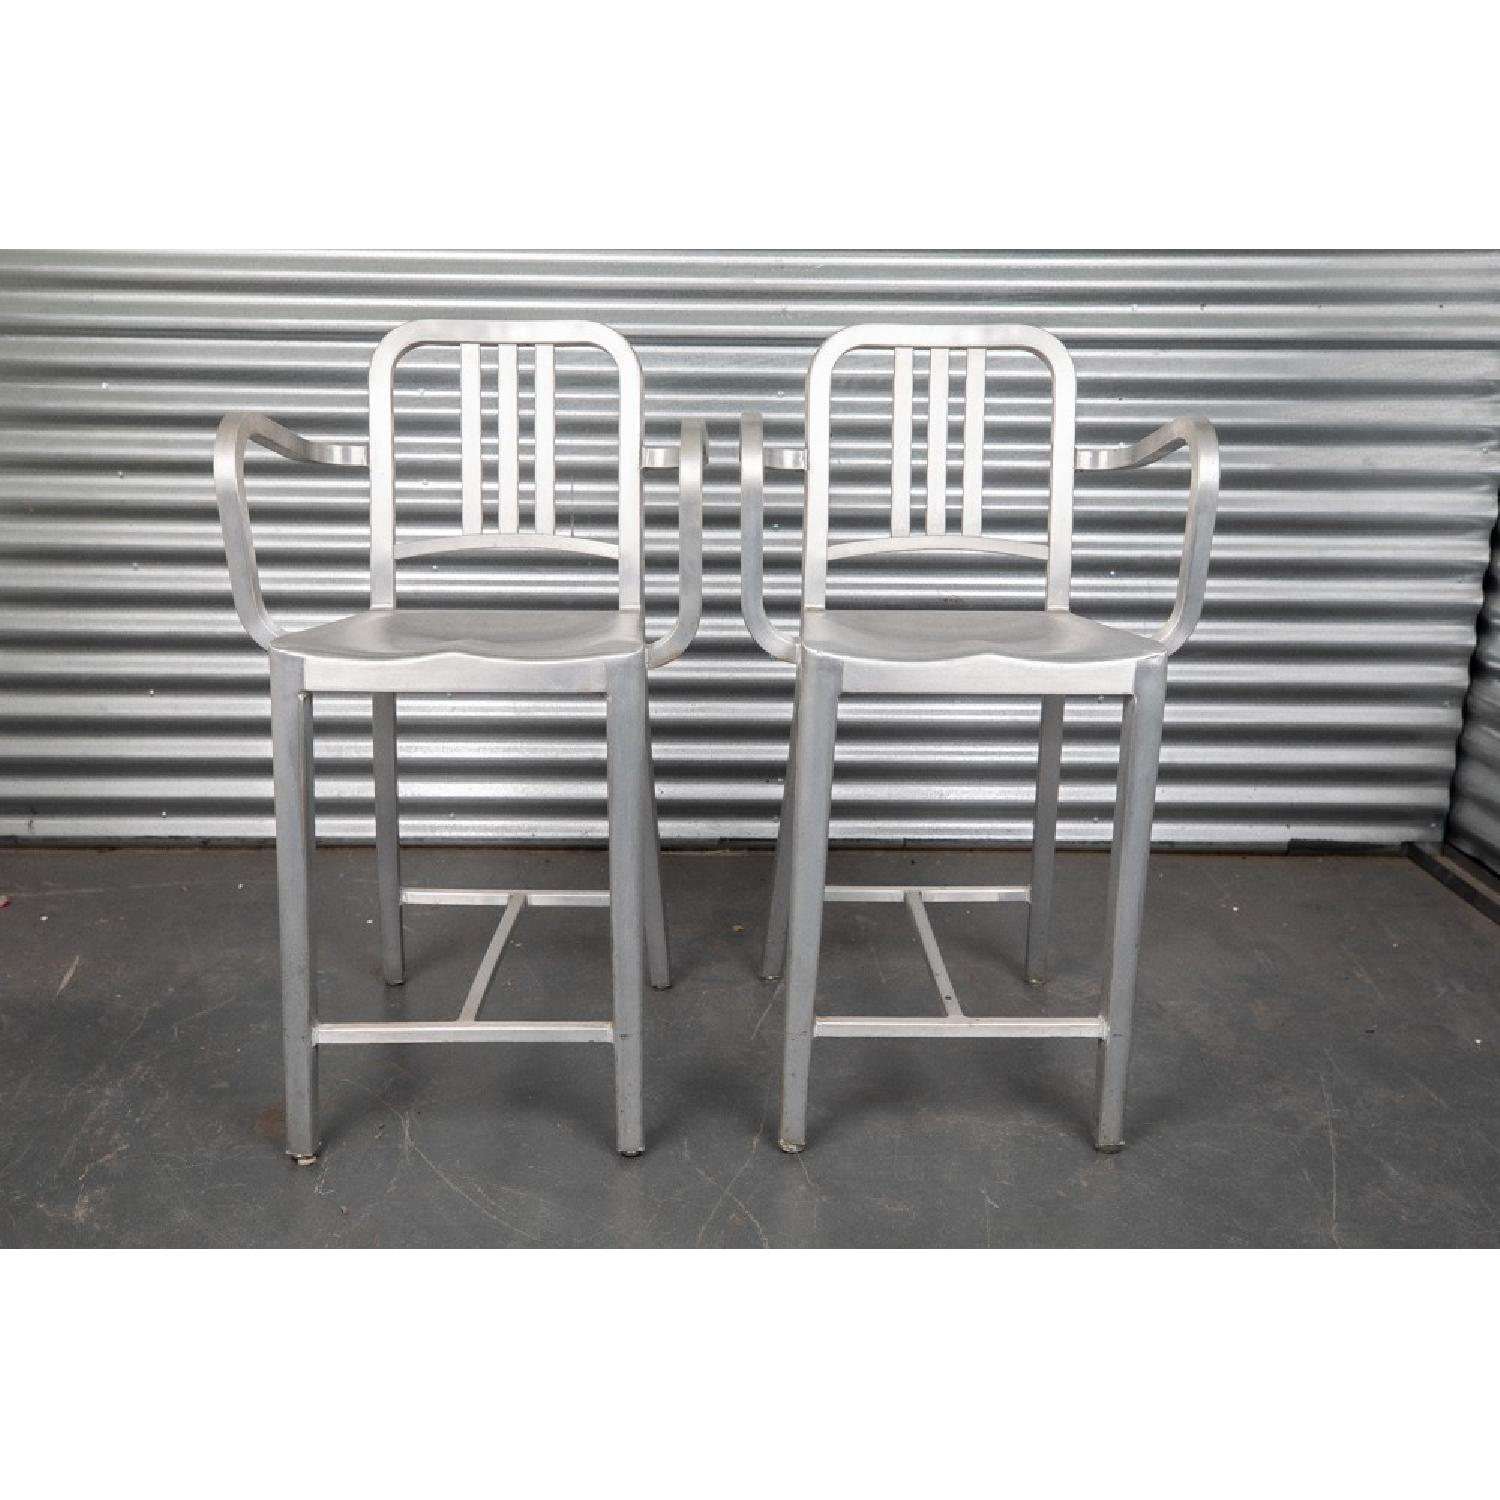 Emeco Navy Counter Stools w/ Arms in Brushed Finish - image-1